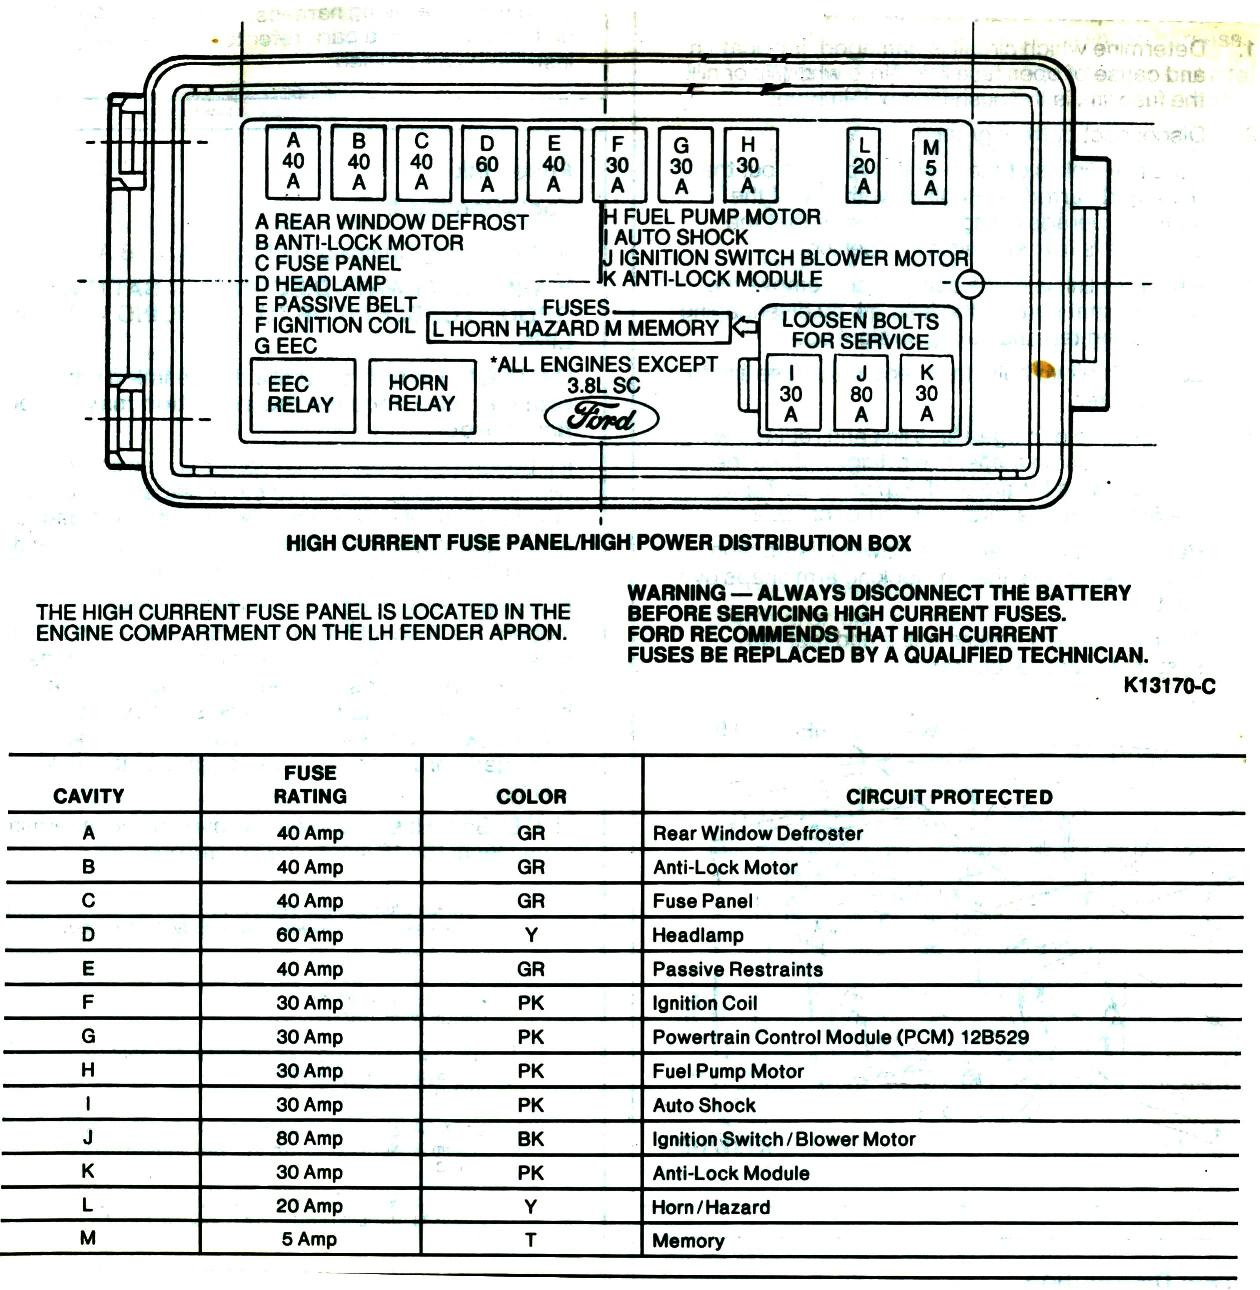 hight resolution of 2002 ford thunderbird fuse box location schema wiring diagrams 2005 ford explorer fuse panel location 1994 ford thunderbird fuse box location